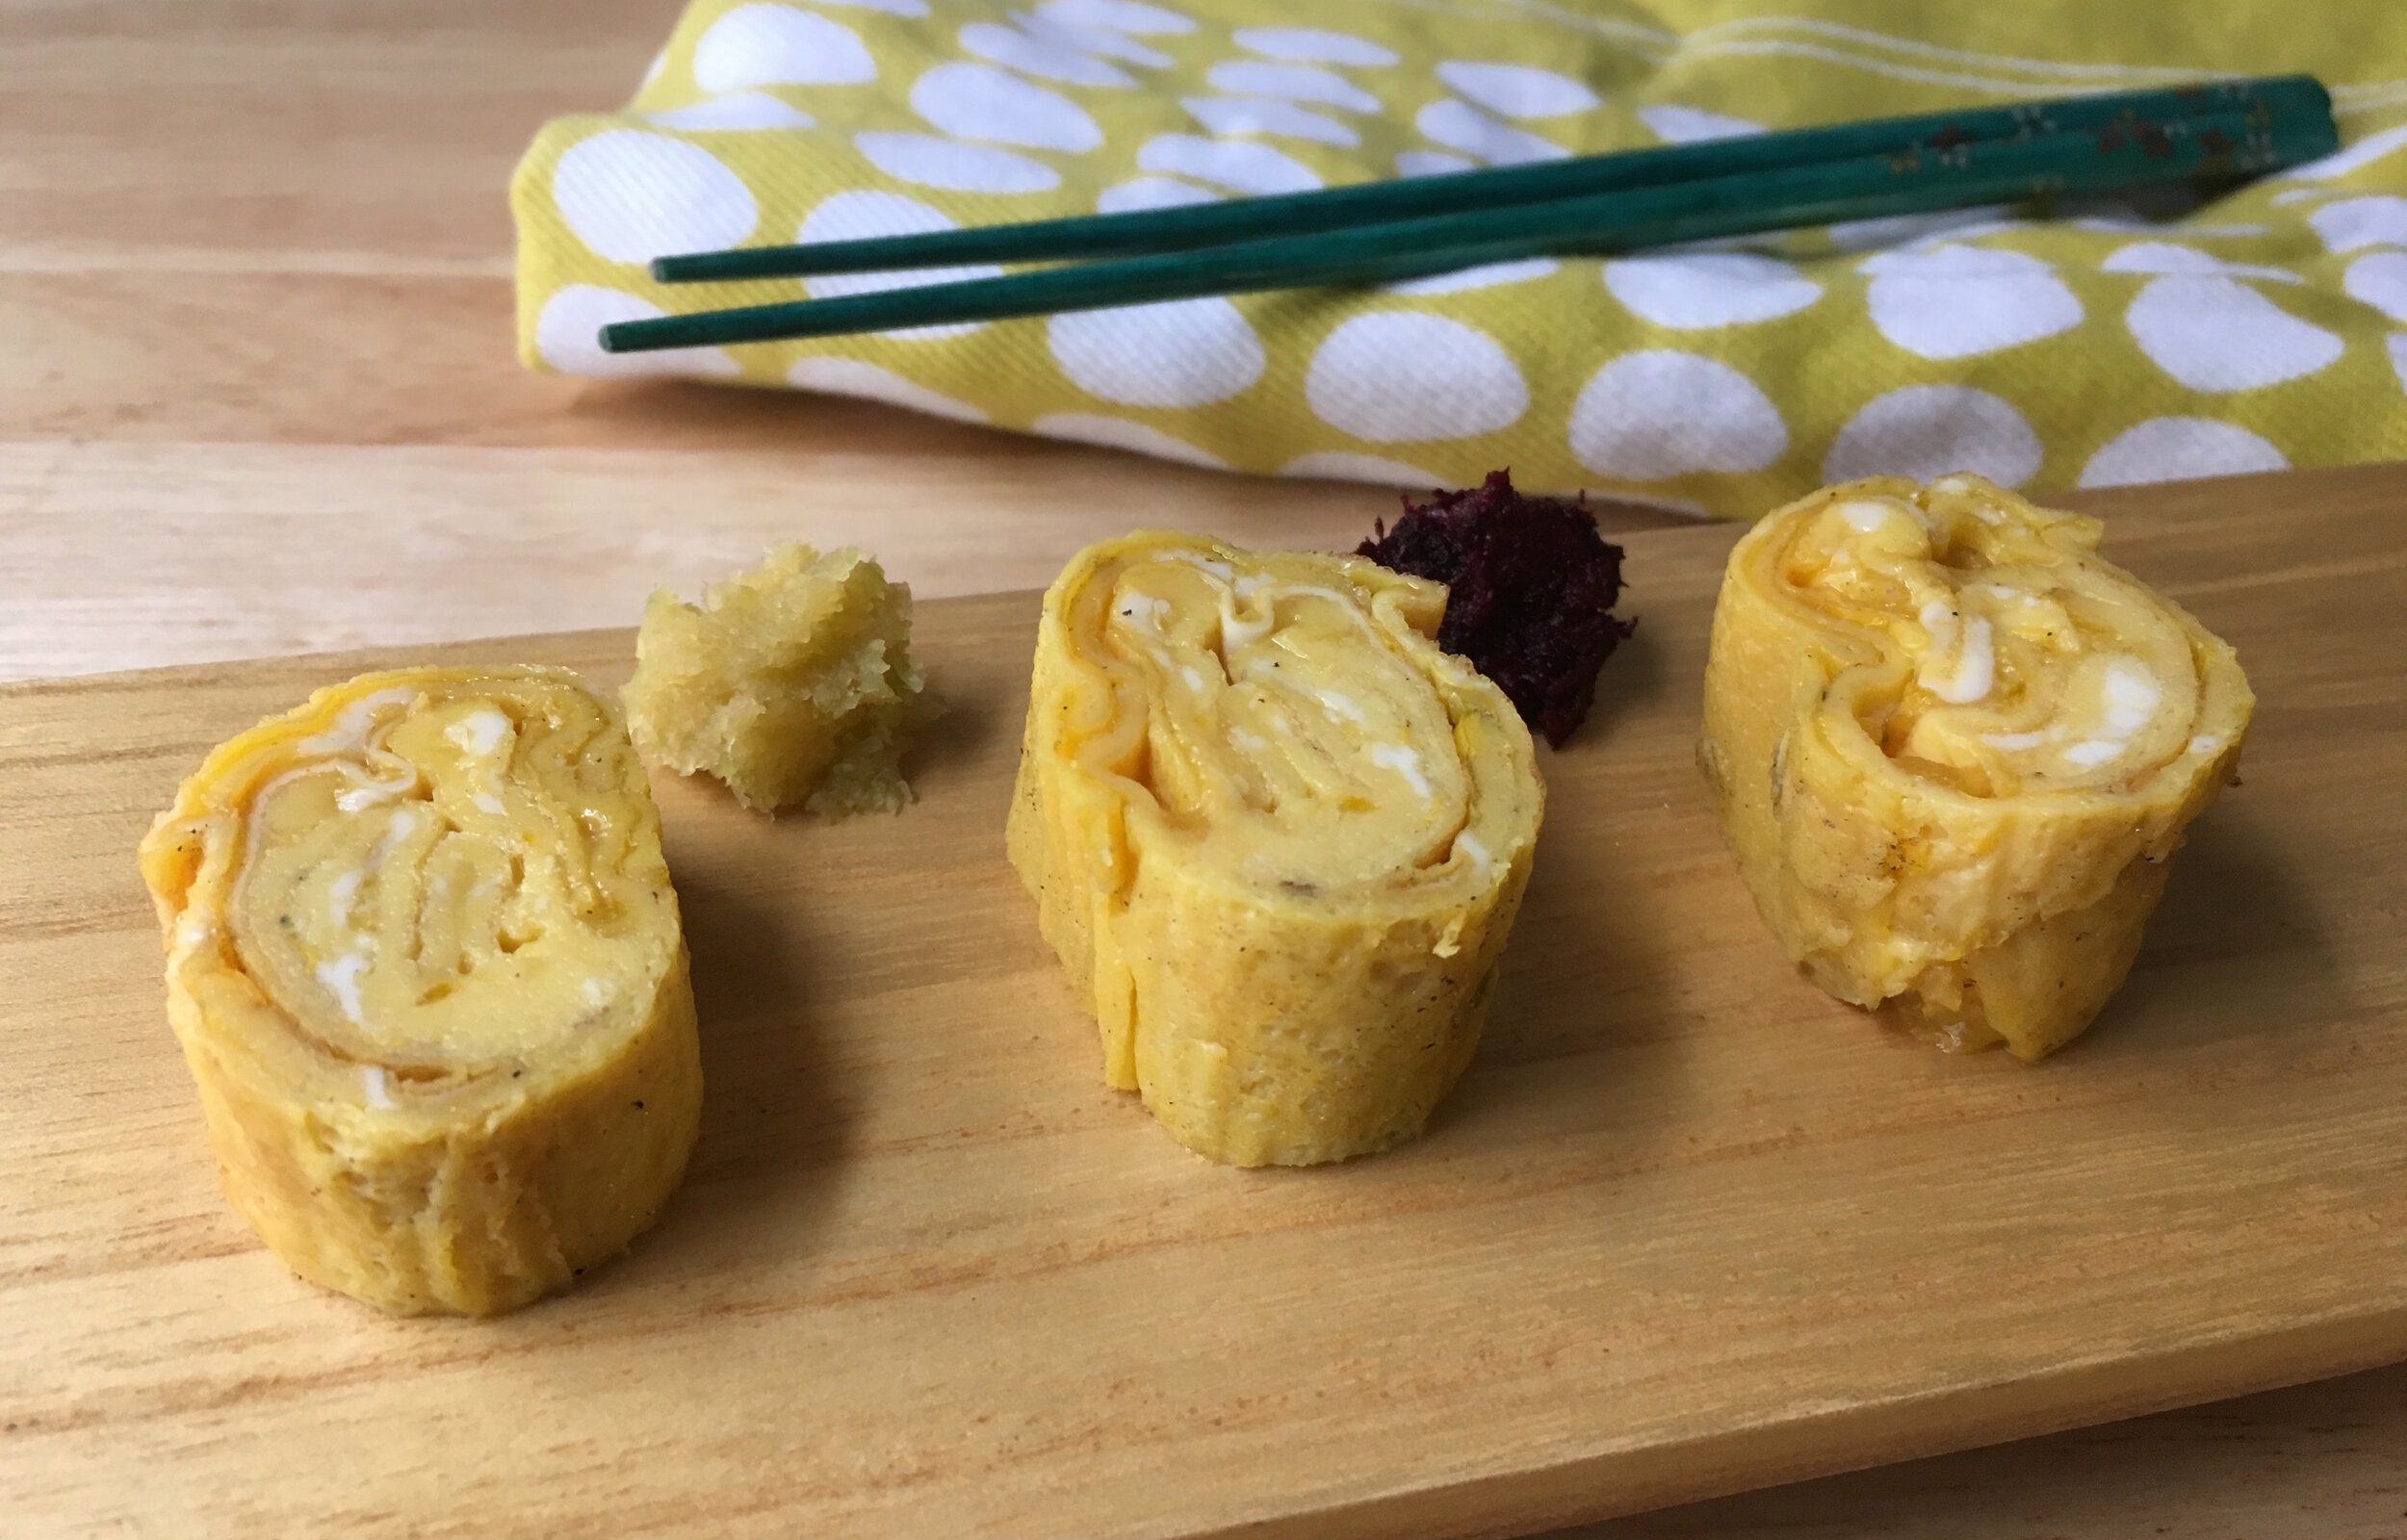 Eggs Will Roll! Make Your Own Tamagoyaki